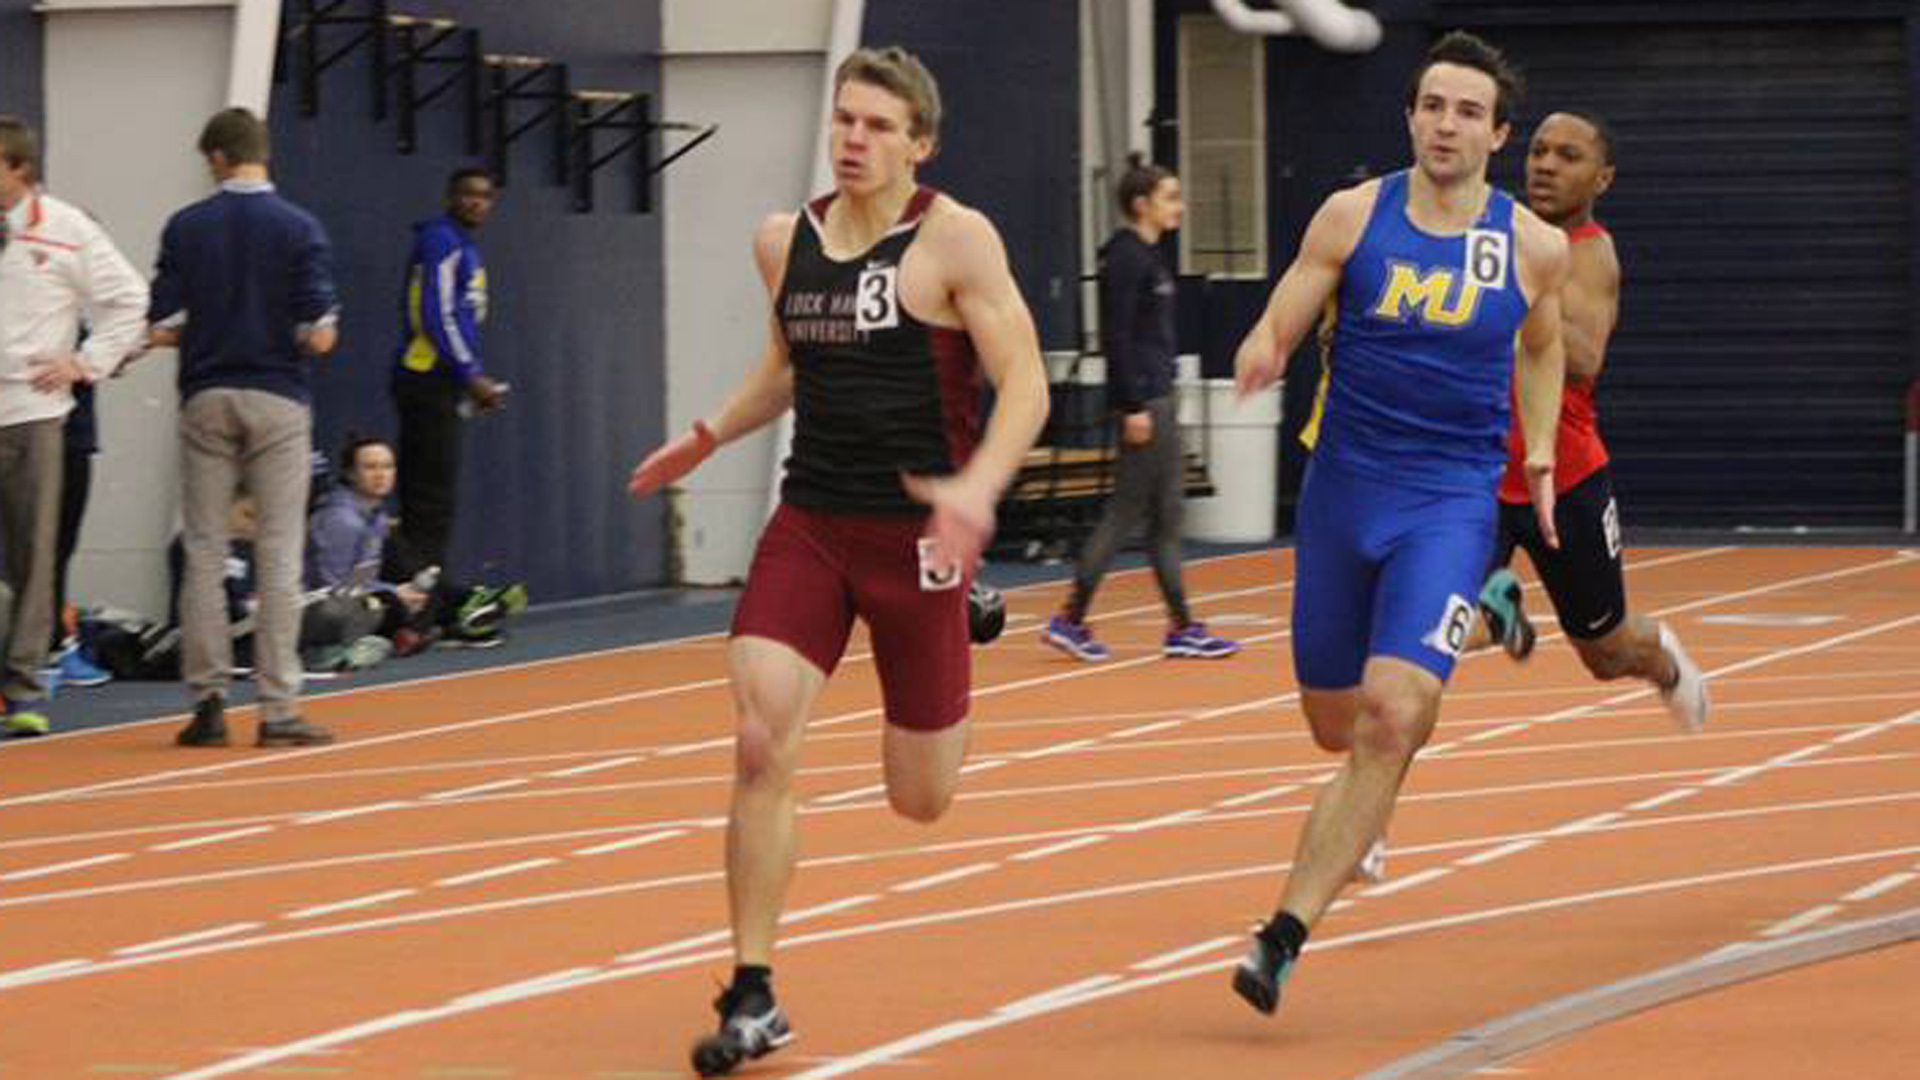 Men's T&F opens season, throwers & PSAC marks highlight the day